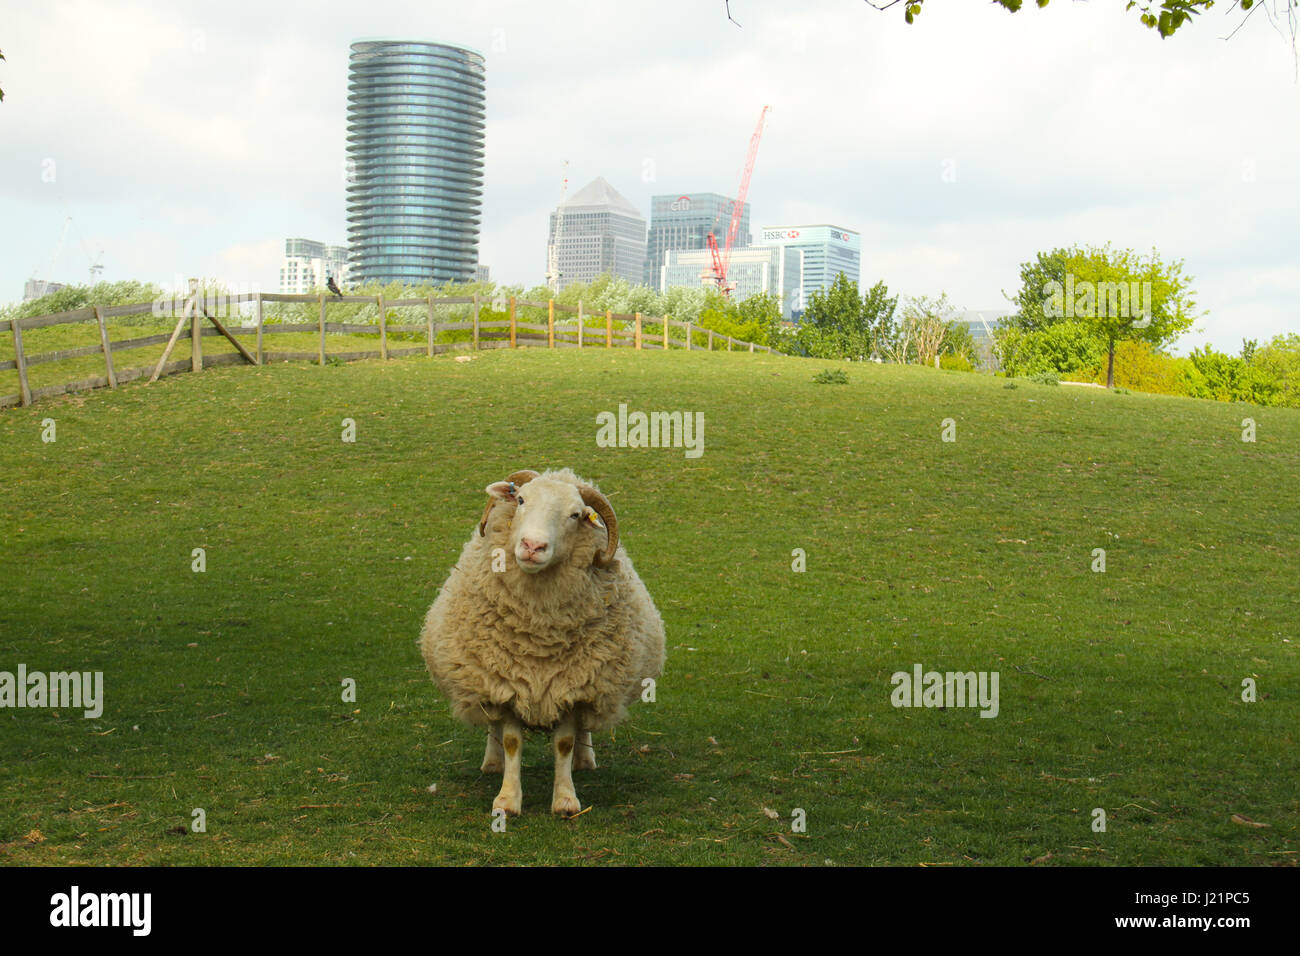 London, UK. 23rd Apr, 2017.   A sheep in a pen at the Madchutte Park and Farm in East London in mid spring with - Stock Image